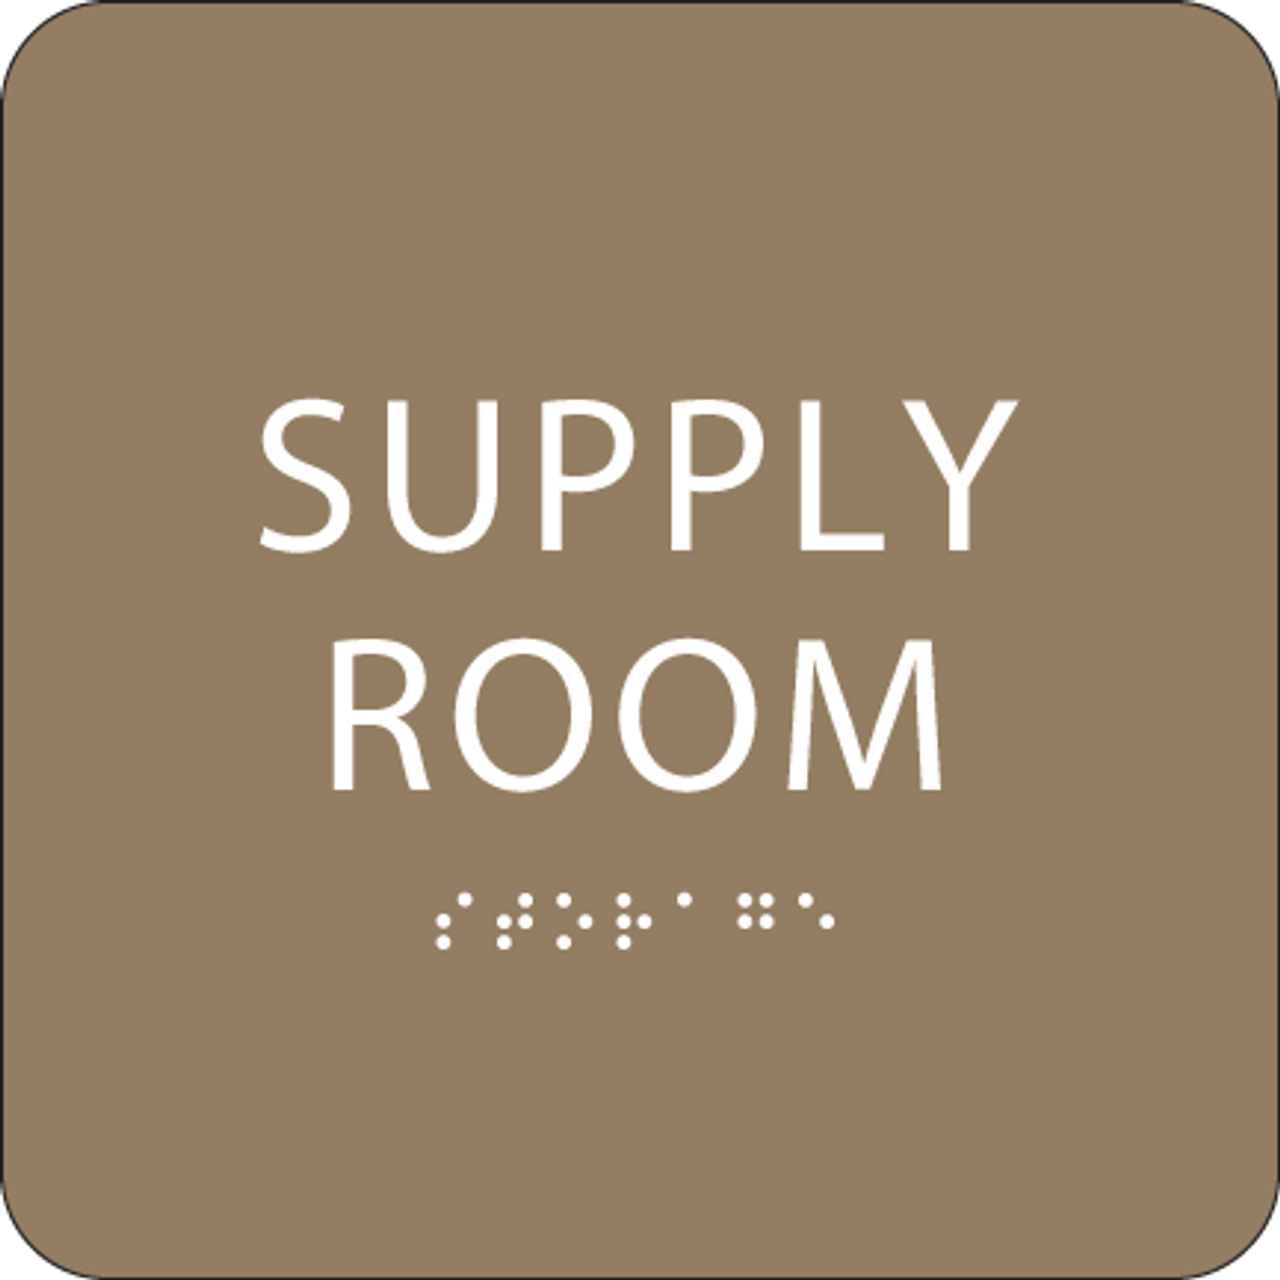 Brown Supply Room Braille Sign